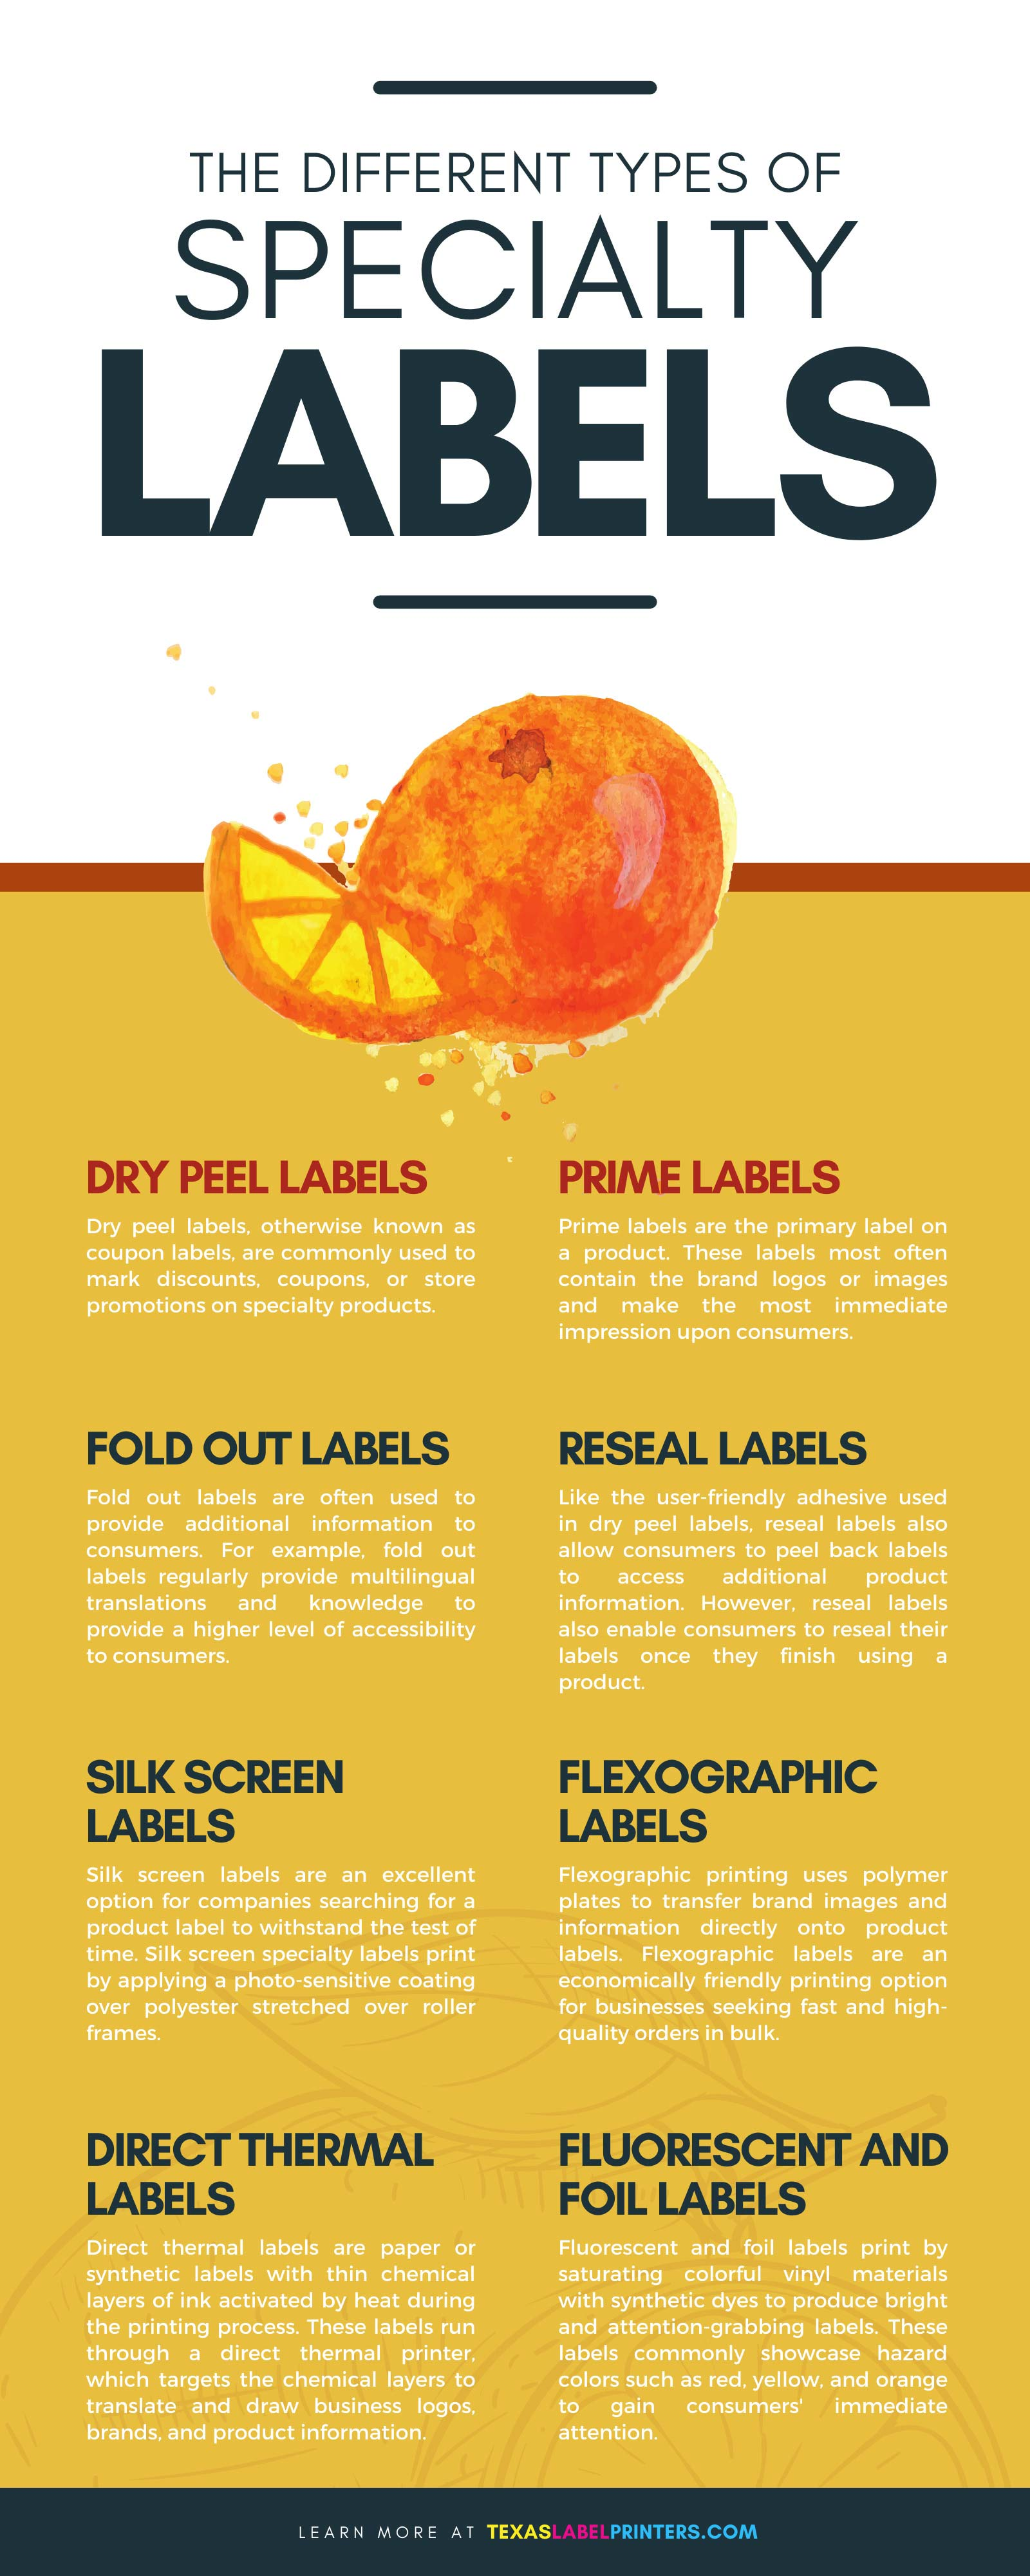 The Different Types of Specialty Labels Infographic